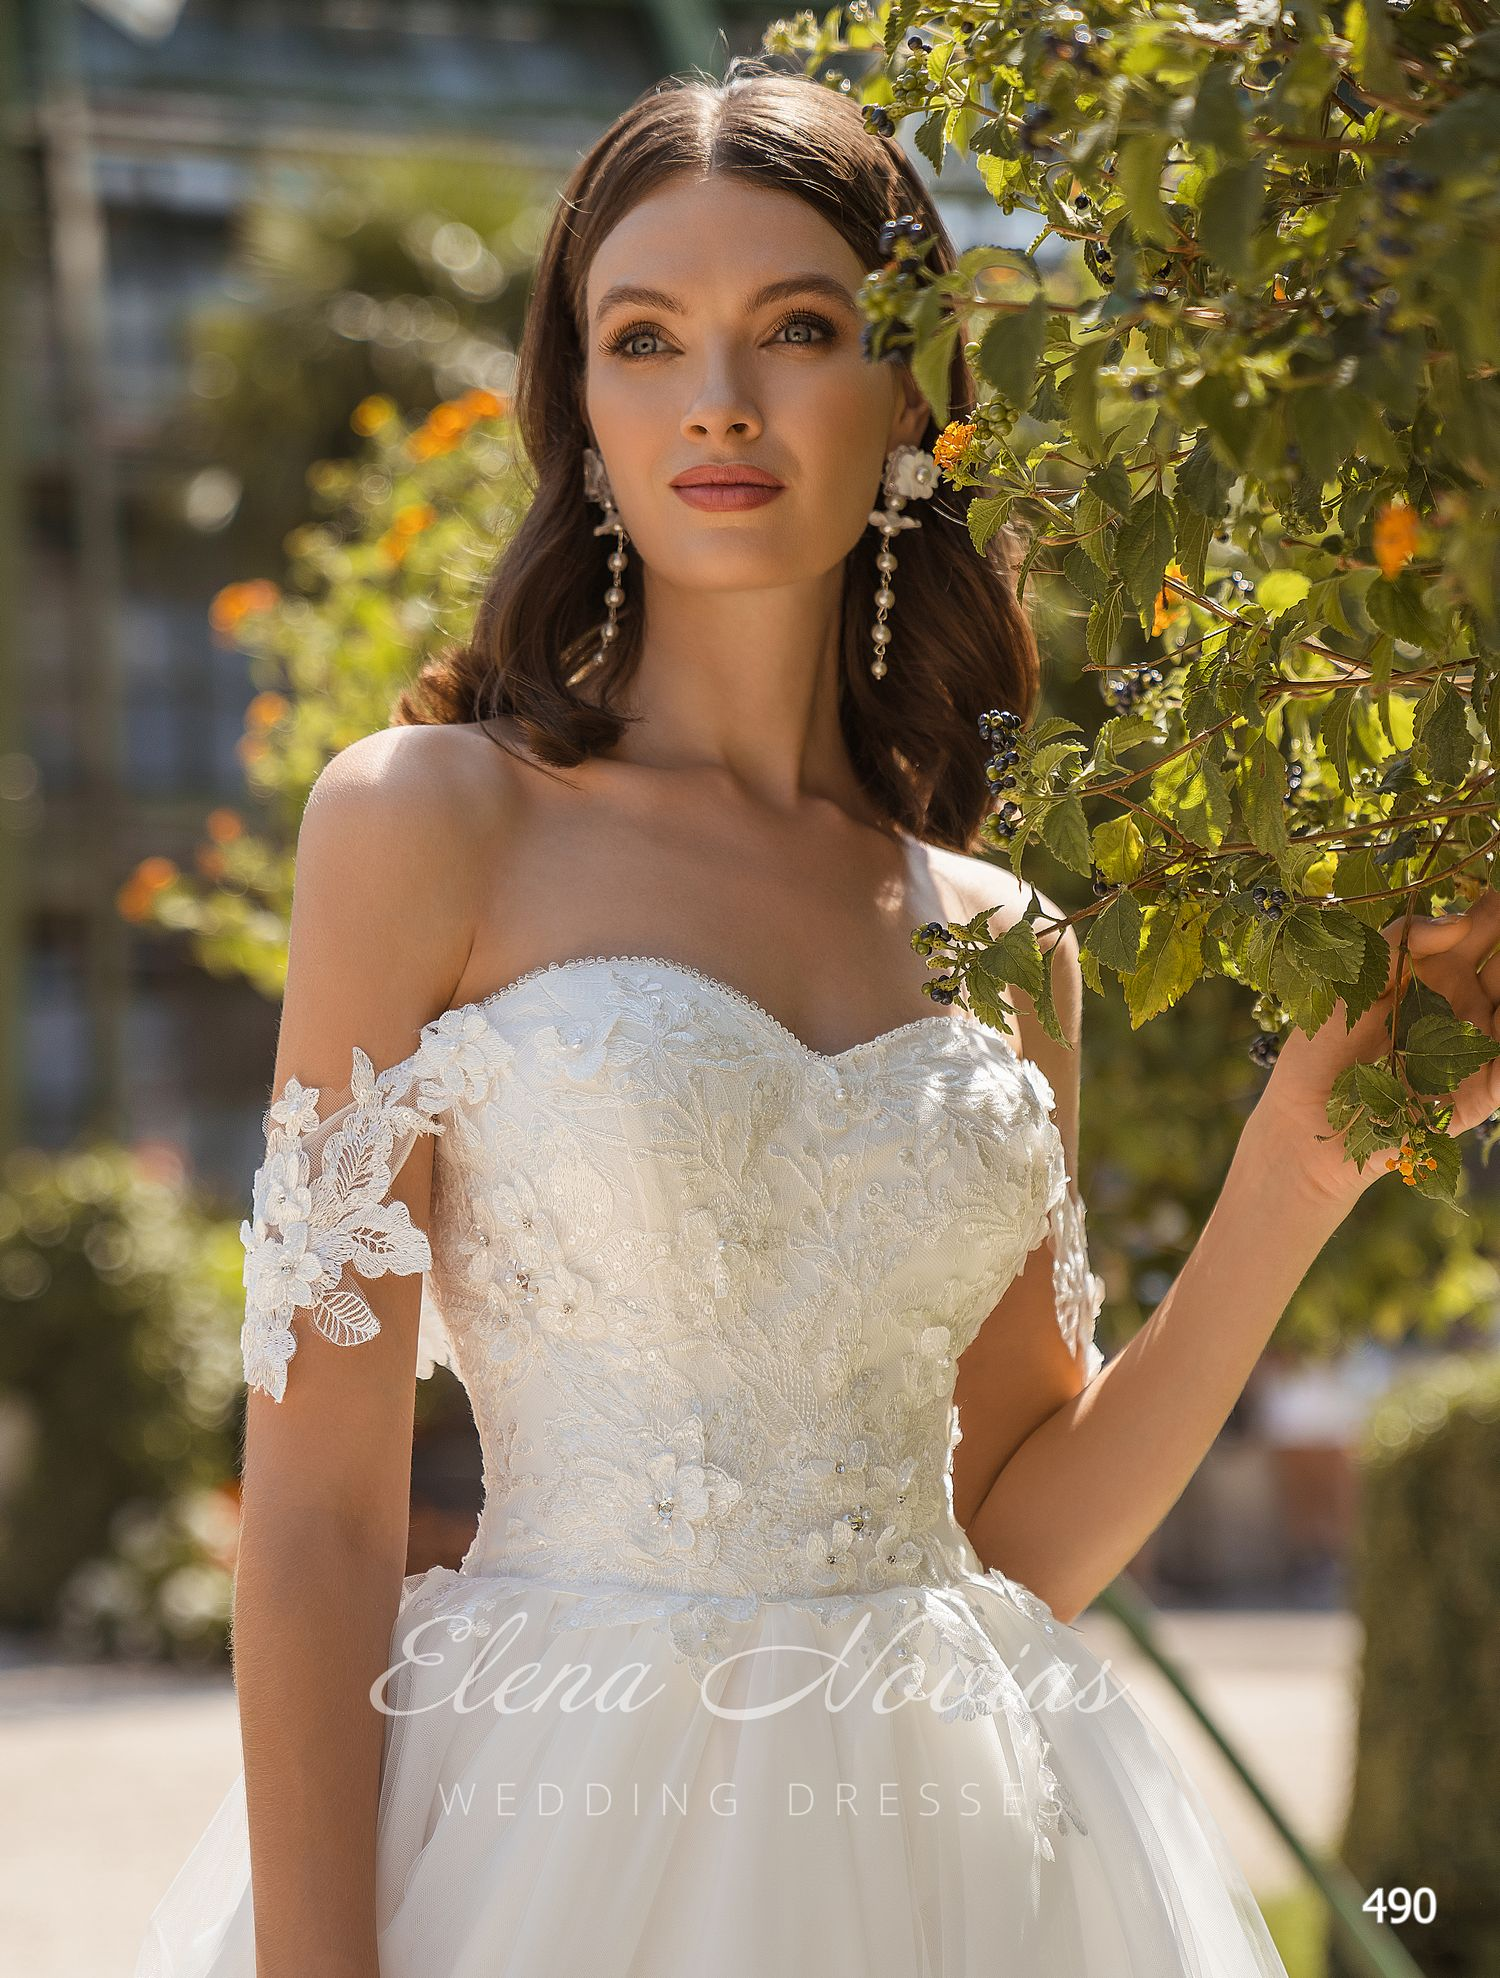 Wedding dresses 490 1